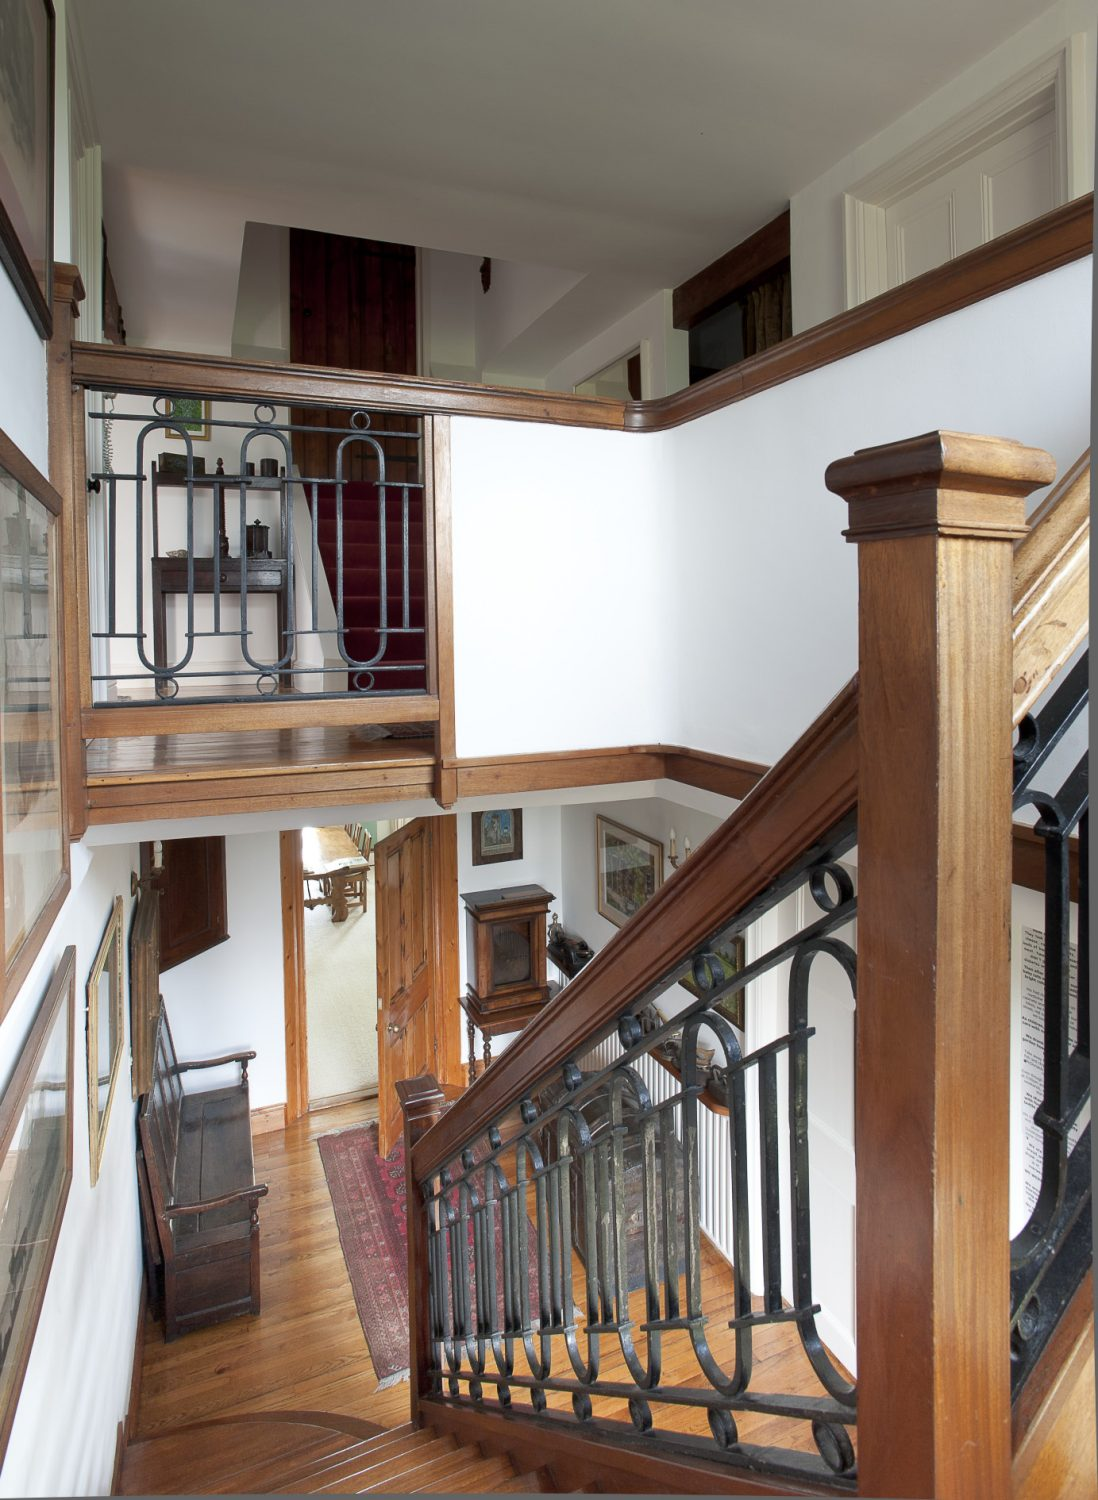 Upstairs, Jenny and David have combined space with a wide landing and corridor with intimate and unexpected twists and turns